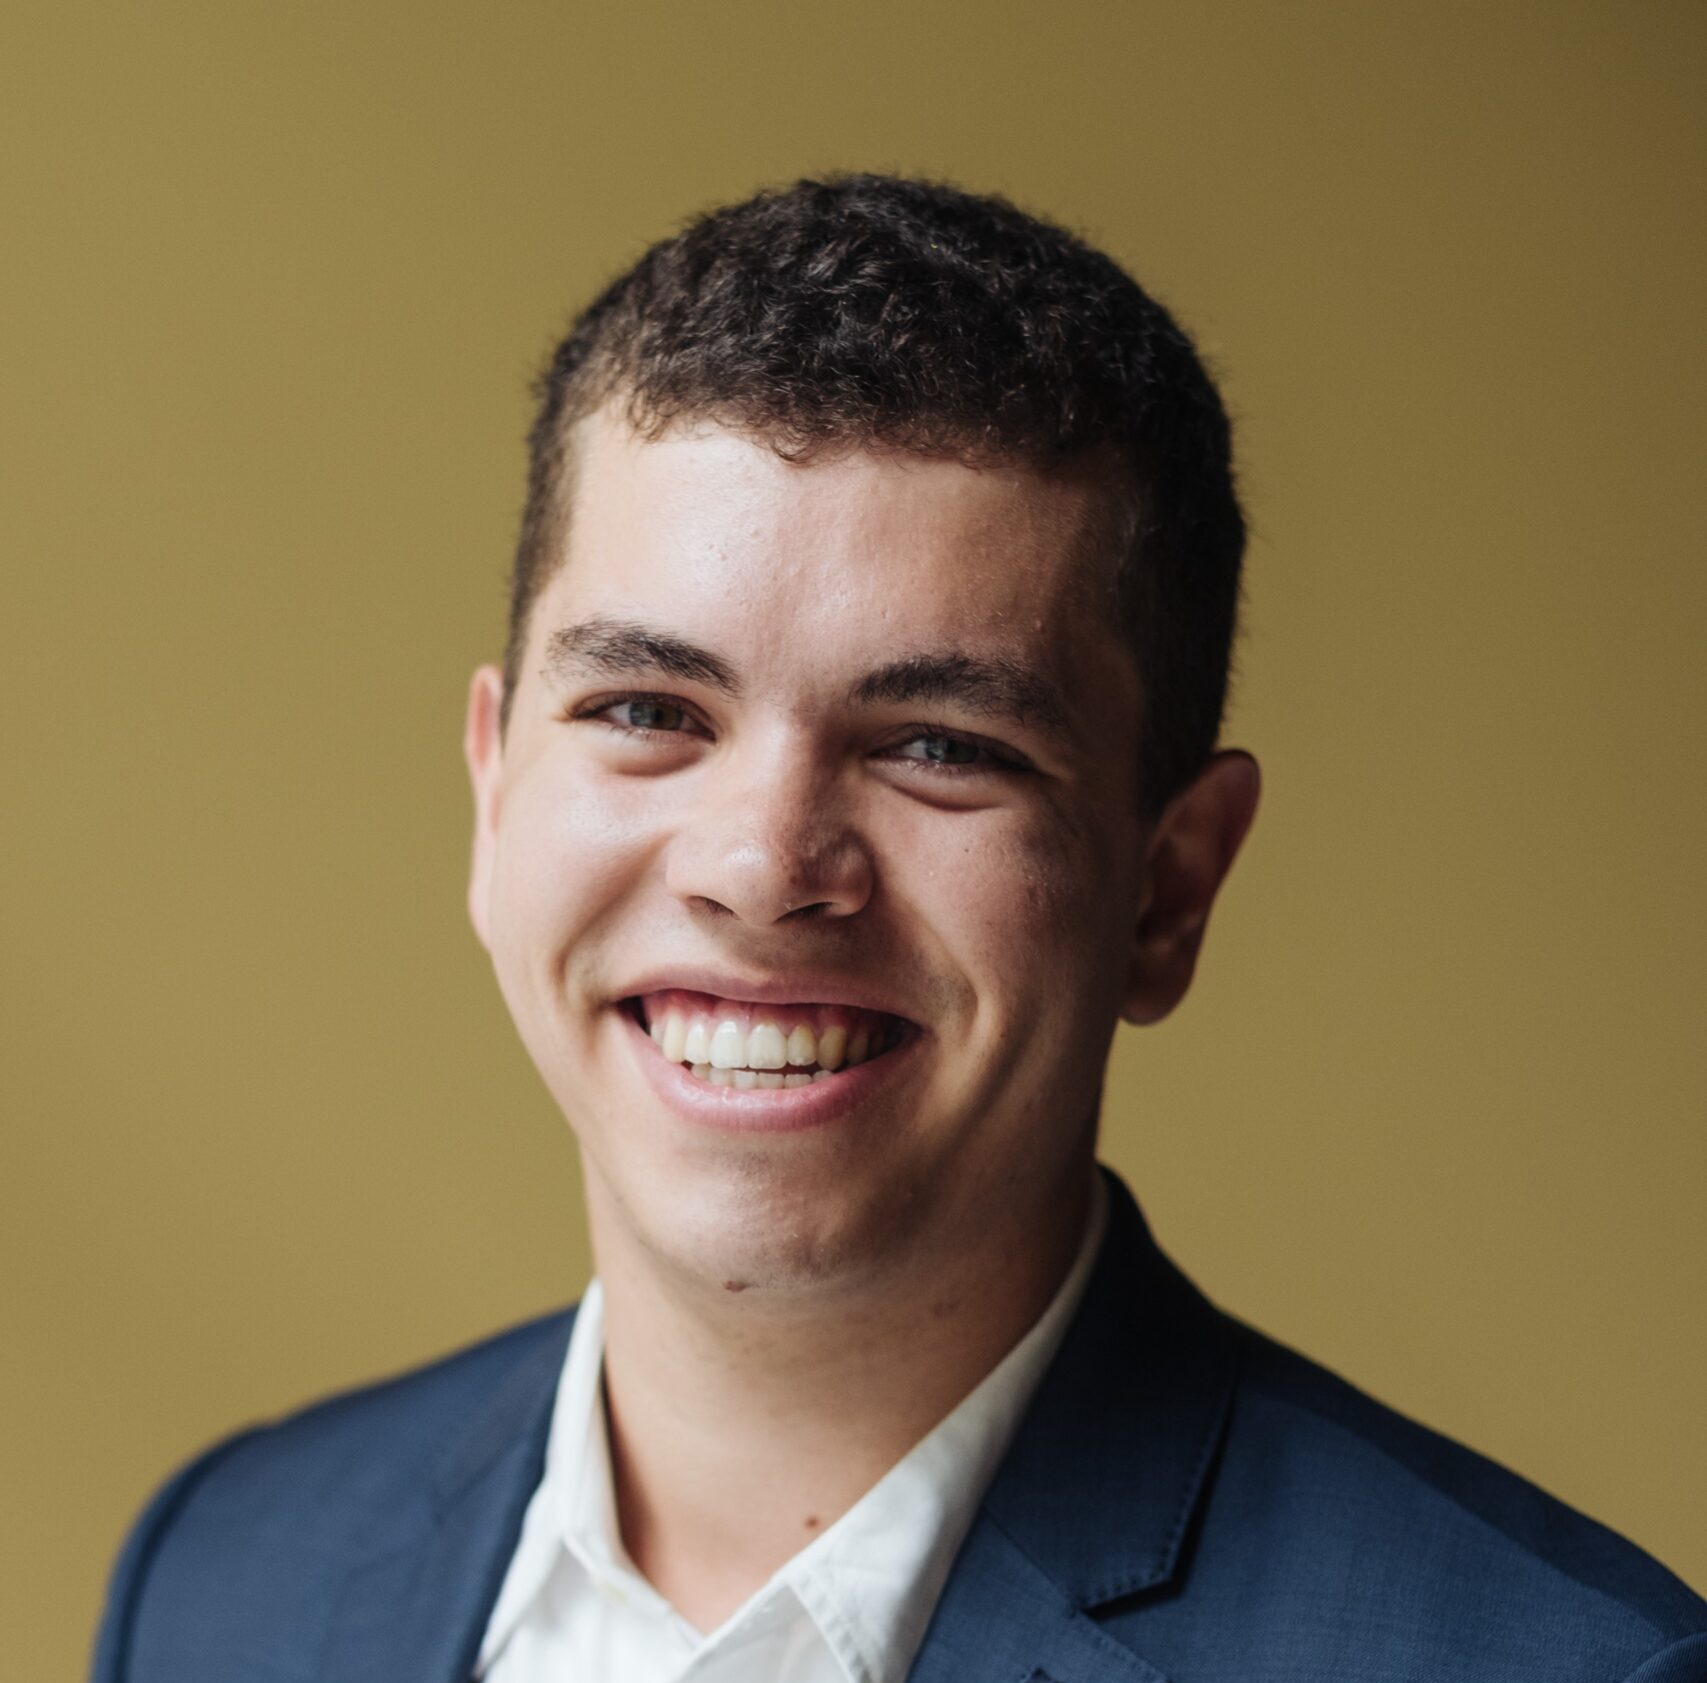 Bruno Faviero, Co-founder & COO, Seed